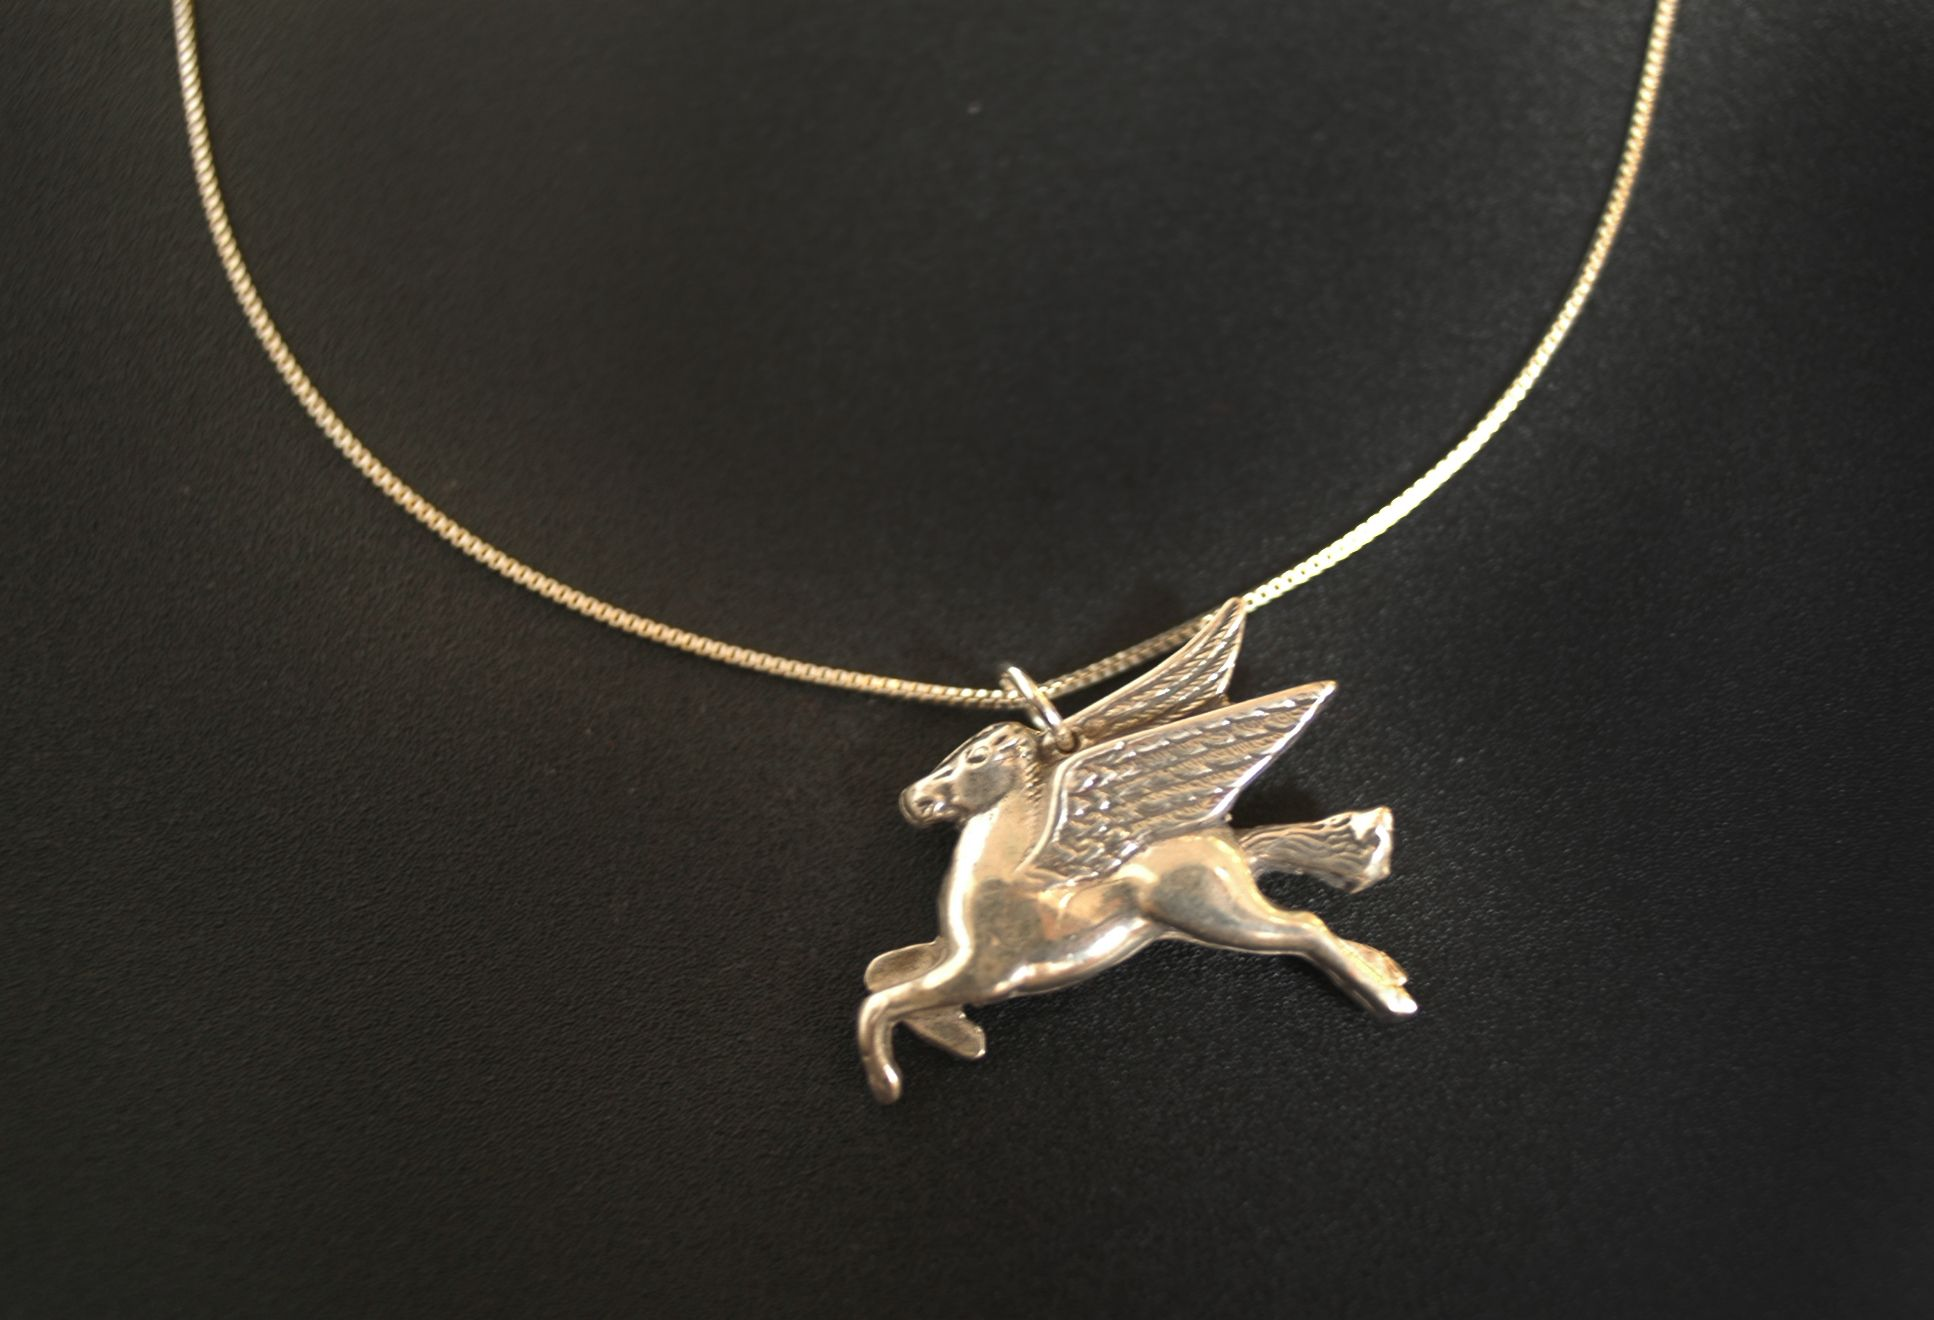 Mobil Winged Horse Necklace in Sterling Silver « SilverBotanica – Handmade Jewelry designed by Alicia Hanson and Hi Octane Industries Inc. | International Tropical Jewellery